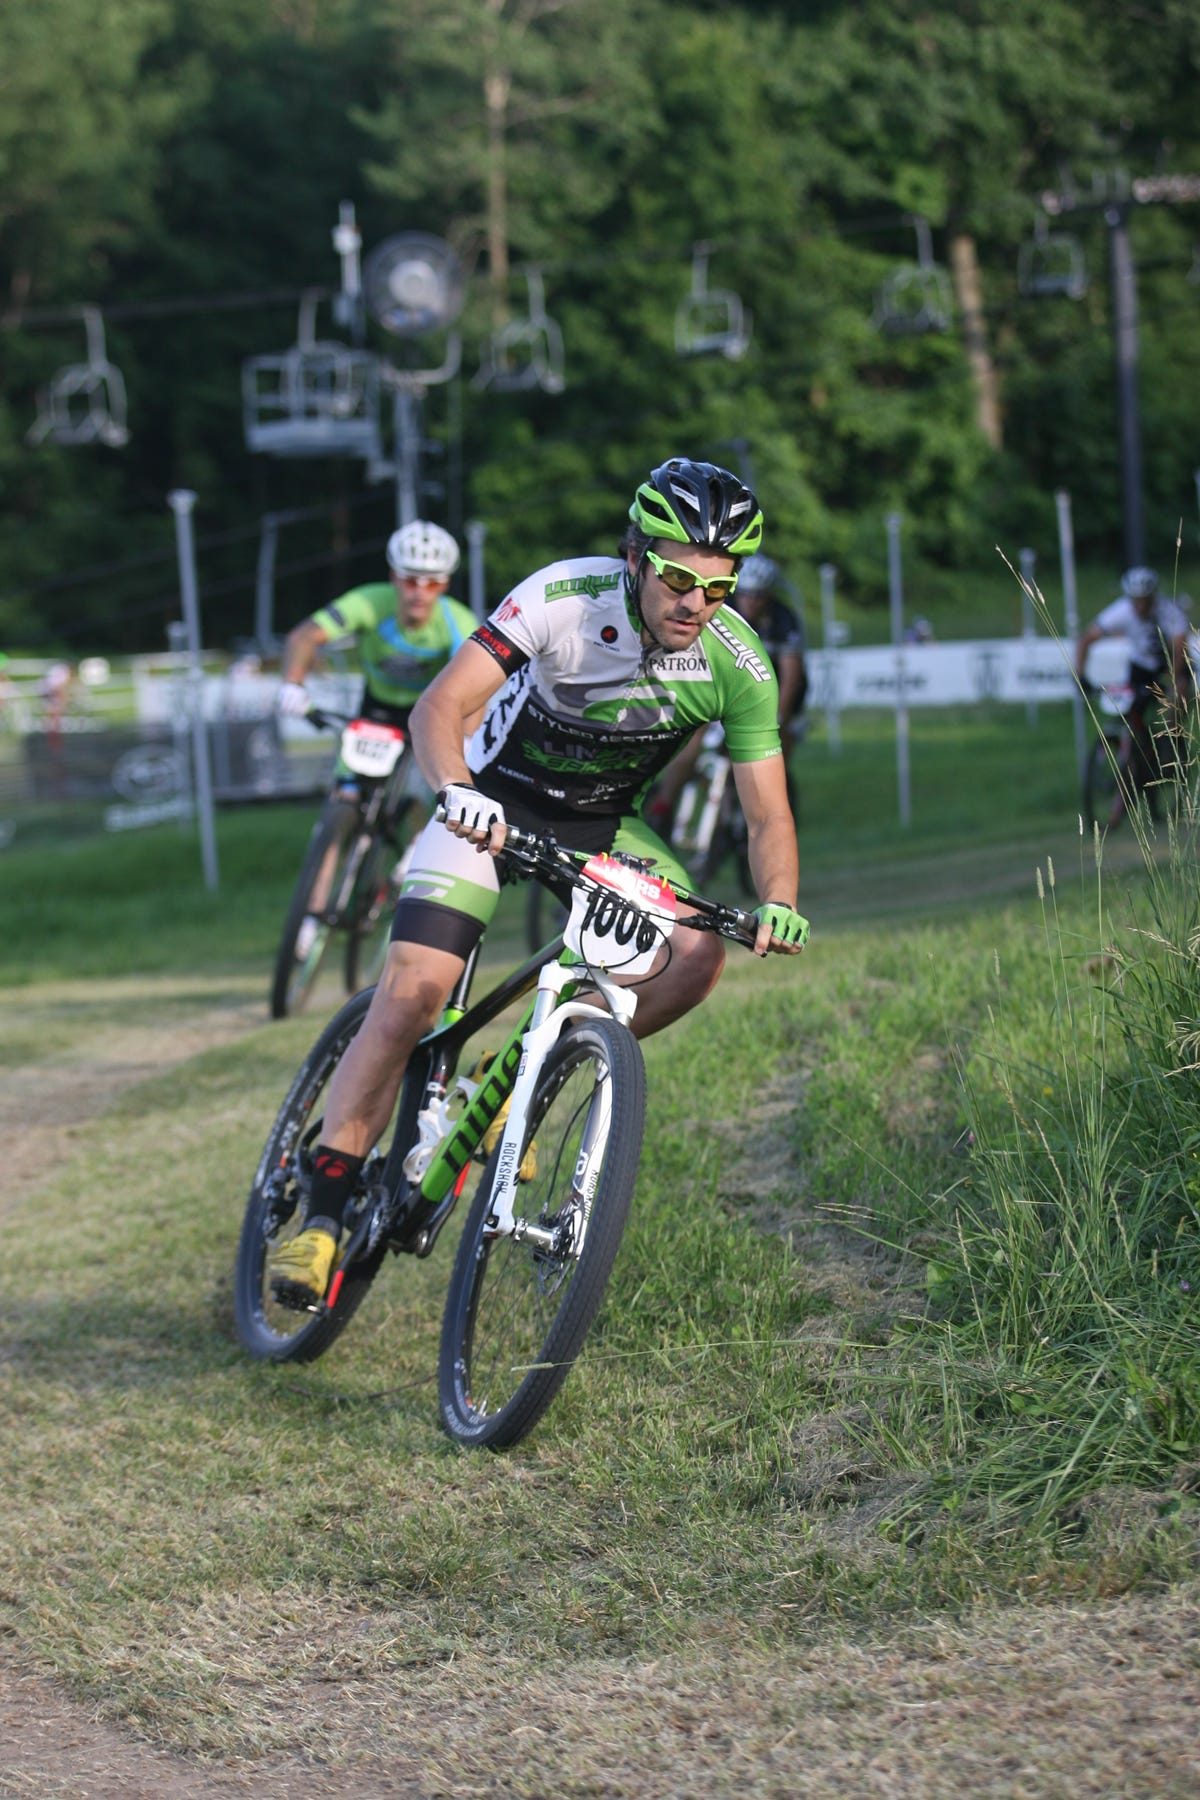 Duo headed to 'epic' mountain bike race in South Africa